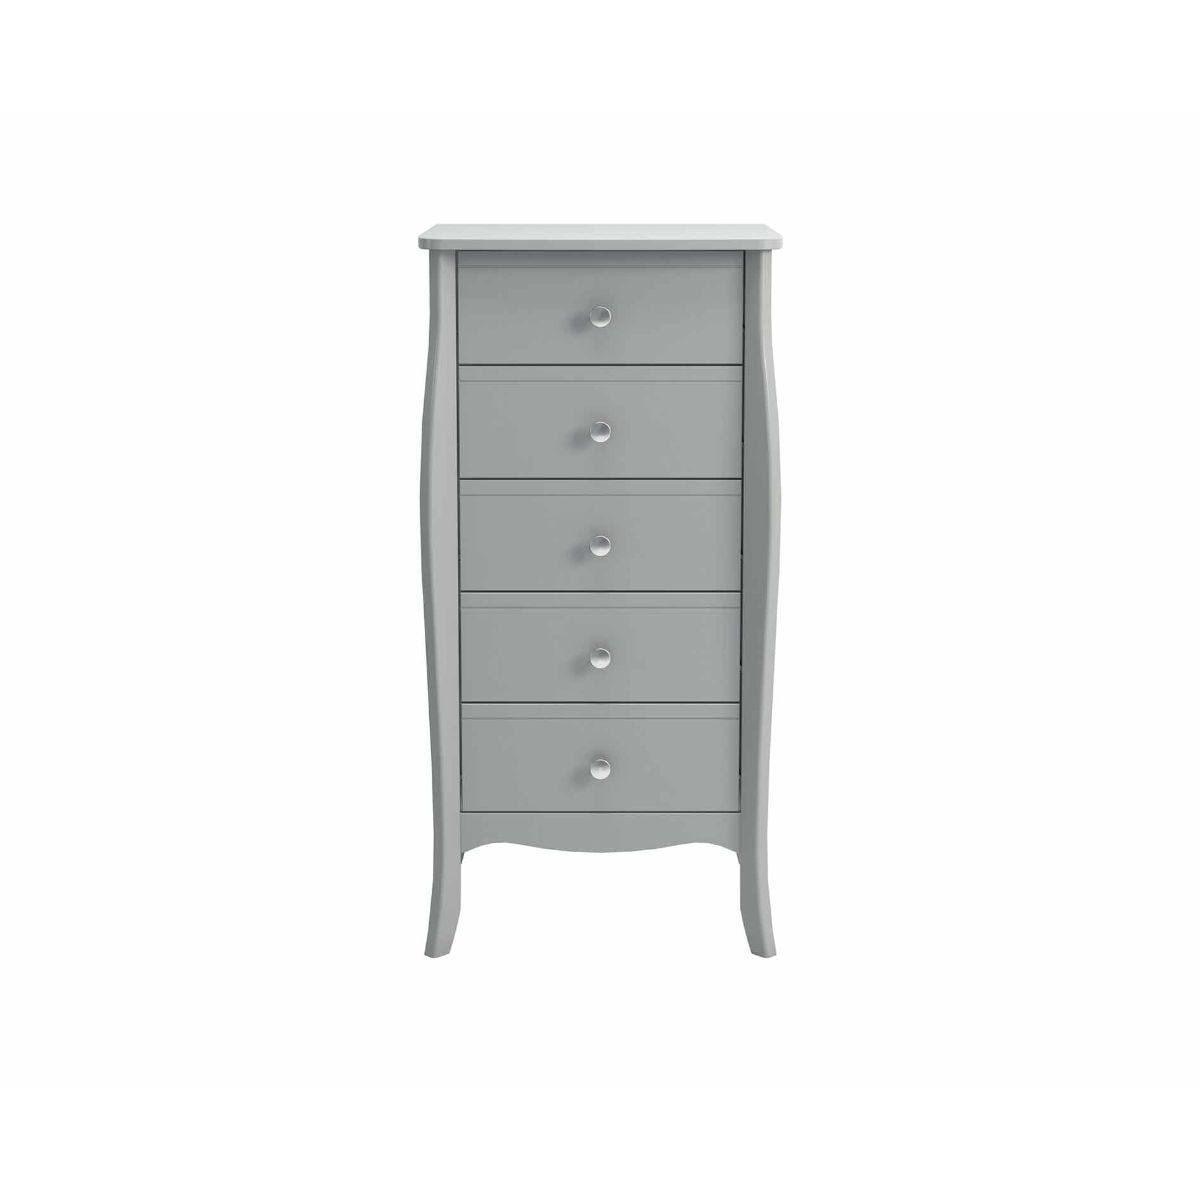 Steens Baroque Narrow Chest of Drawers, Grey